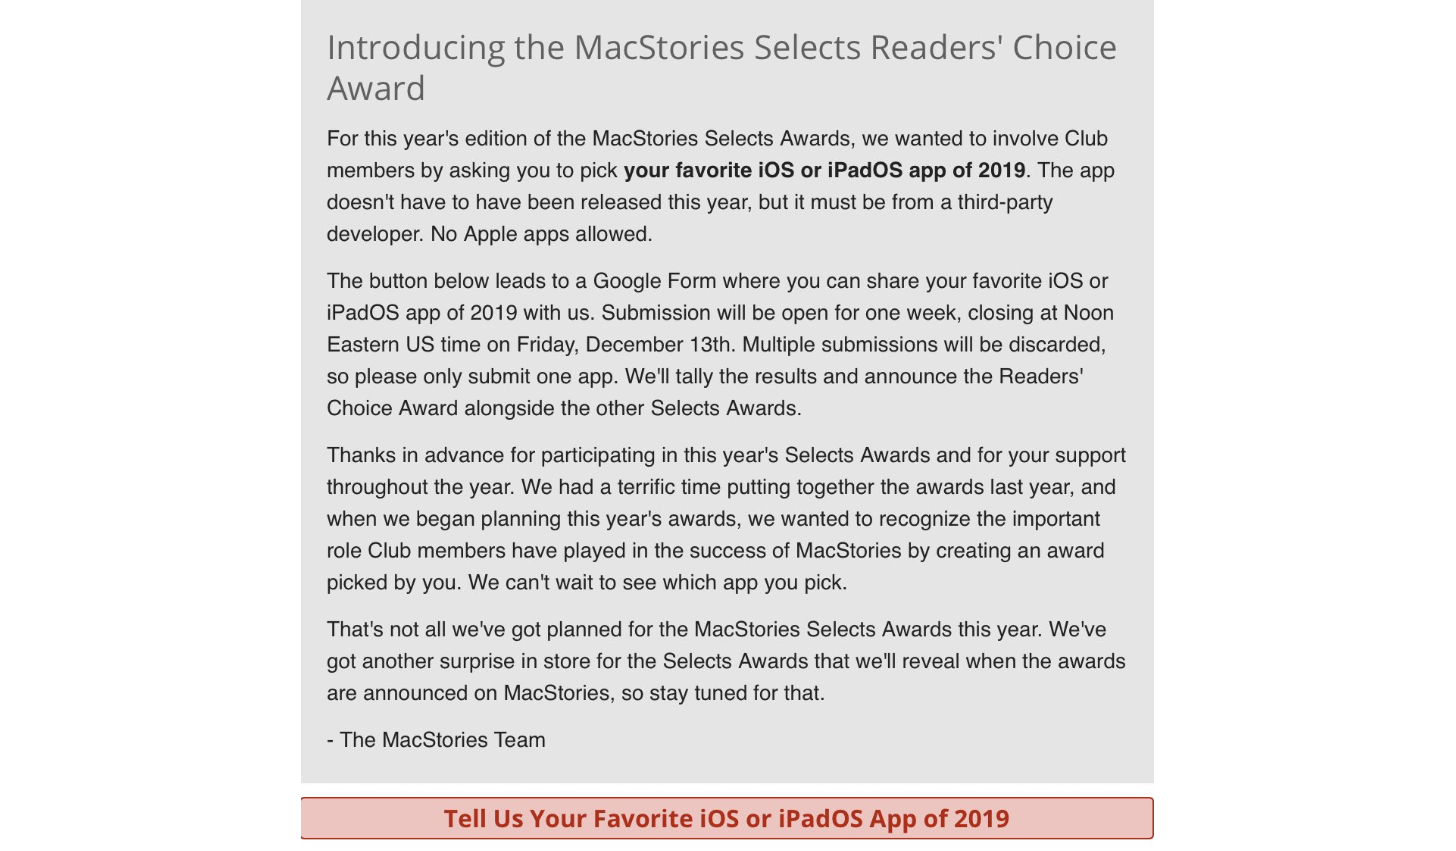 Club MacStories members can find the link to vote for the Readers' Choice Award in Issue 203 of MacStories Weekly.